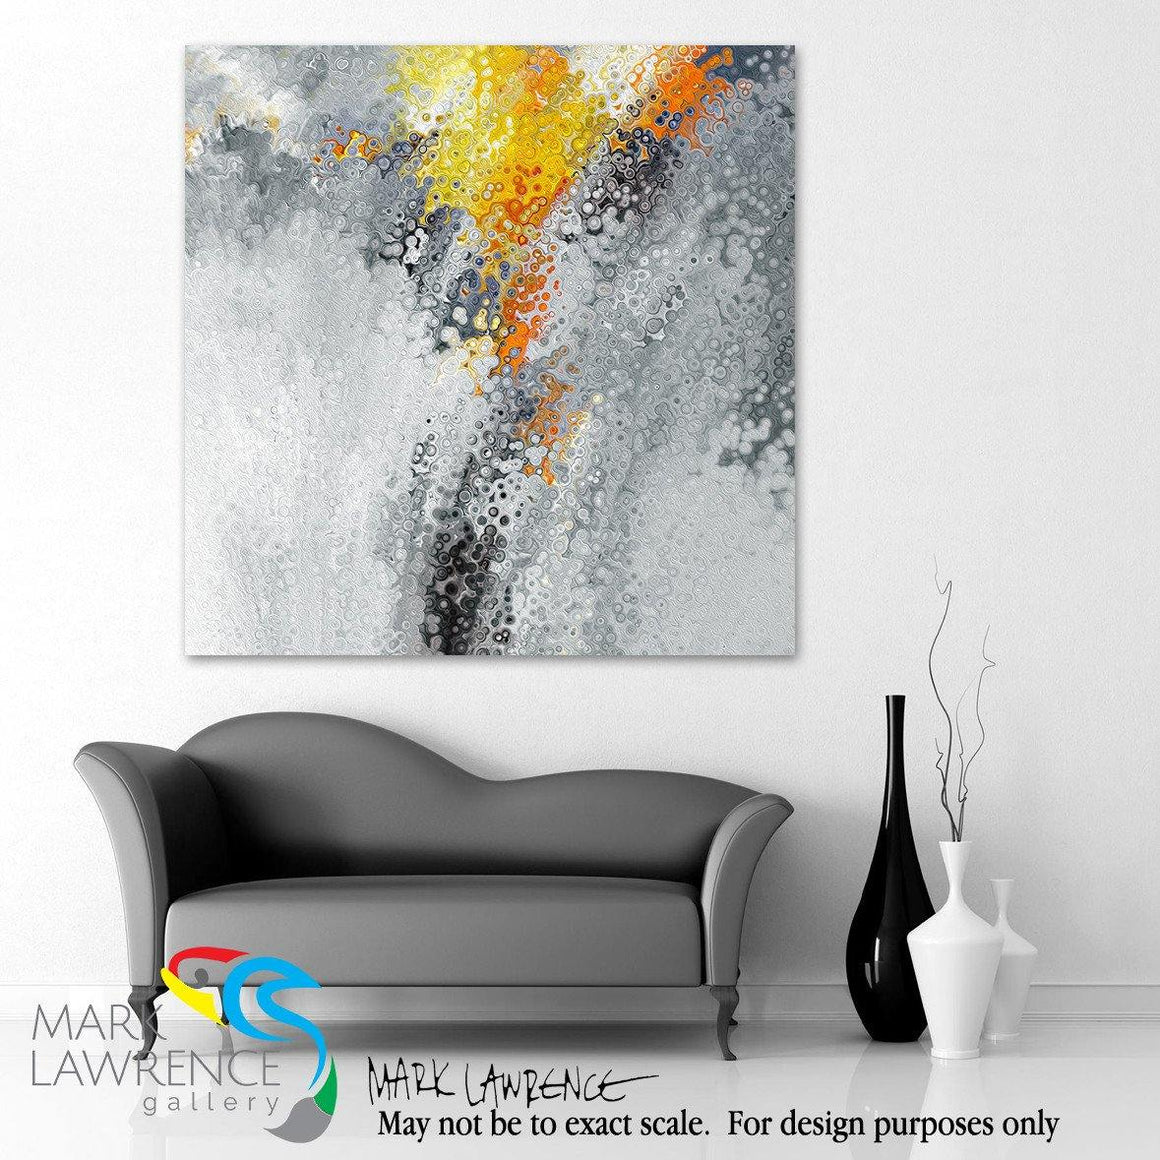 Designer Room Art Inspiration- John 13:7. Farther Along. Limited Edition Christian themed art. Striking hand embellished with brush strokes signed/numbered modern abstracts.